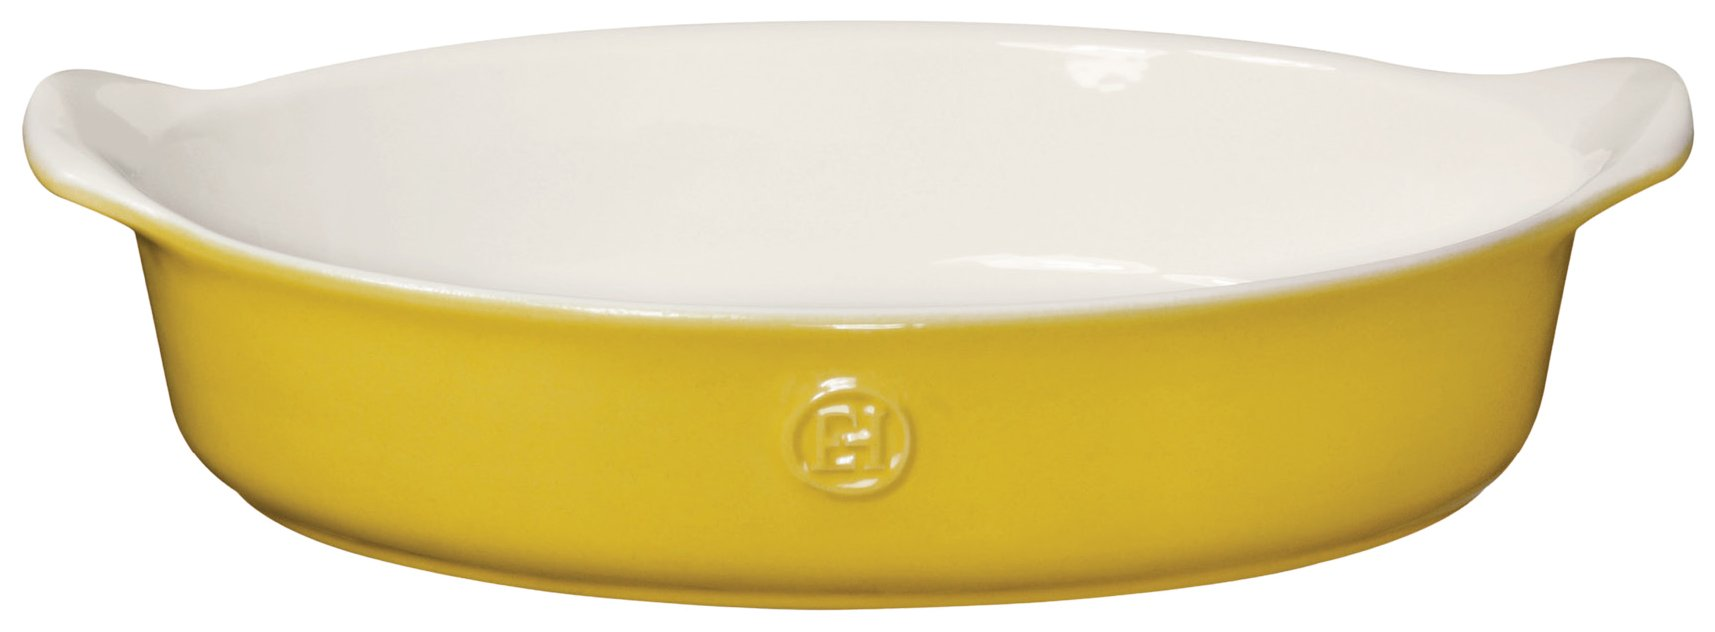 Emile Henry 859028 HR Ceramic Small Oval Baker, Leaves